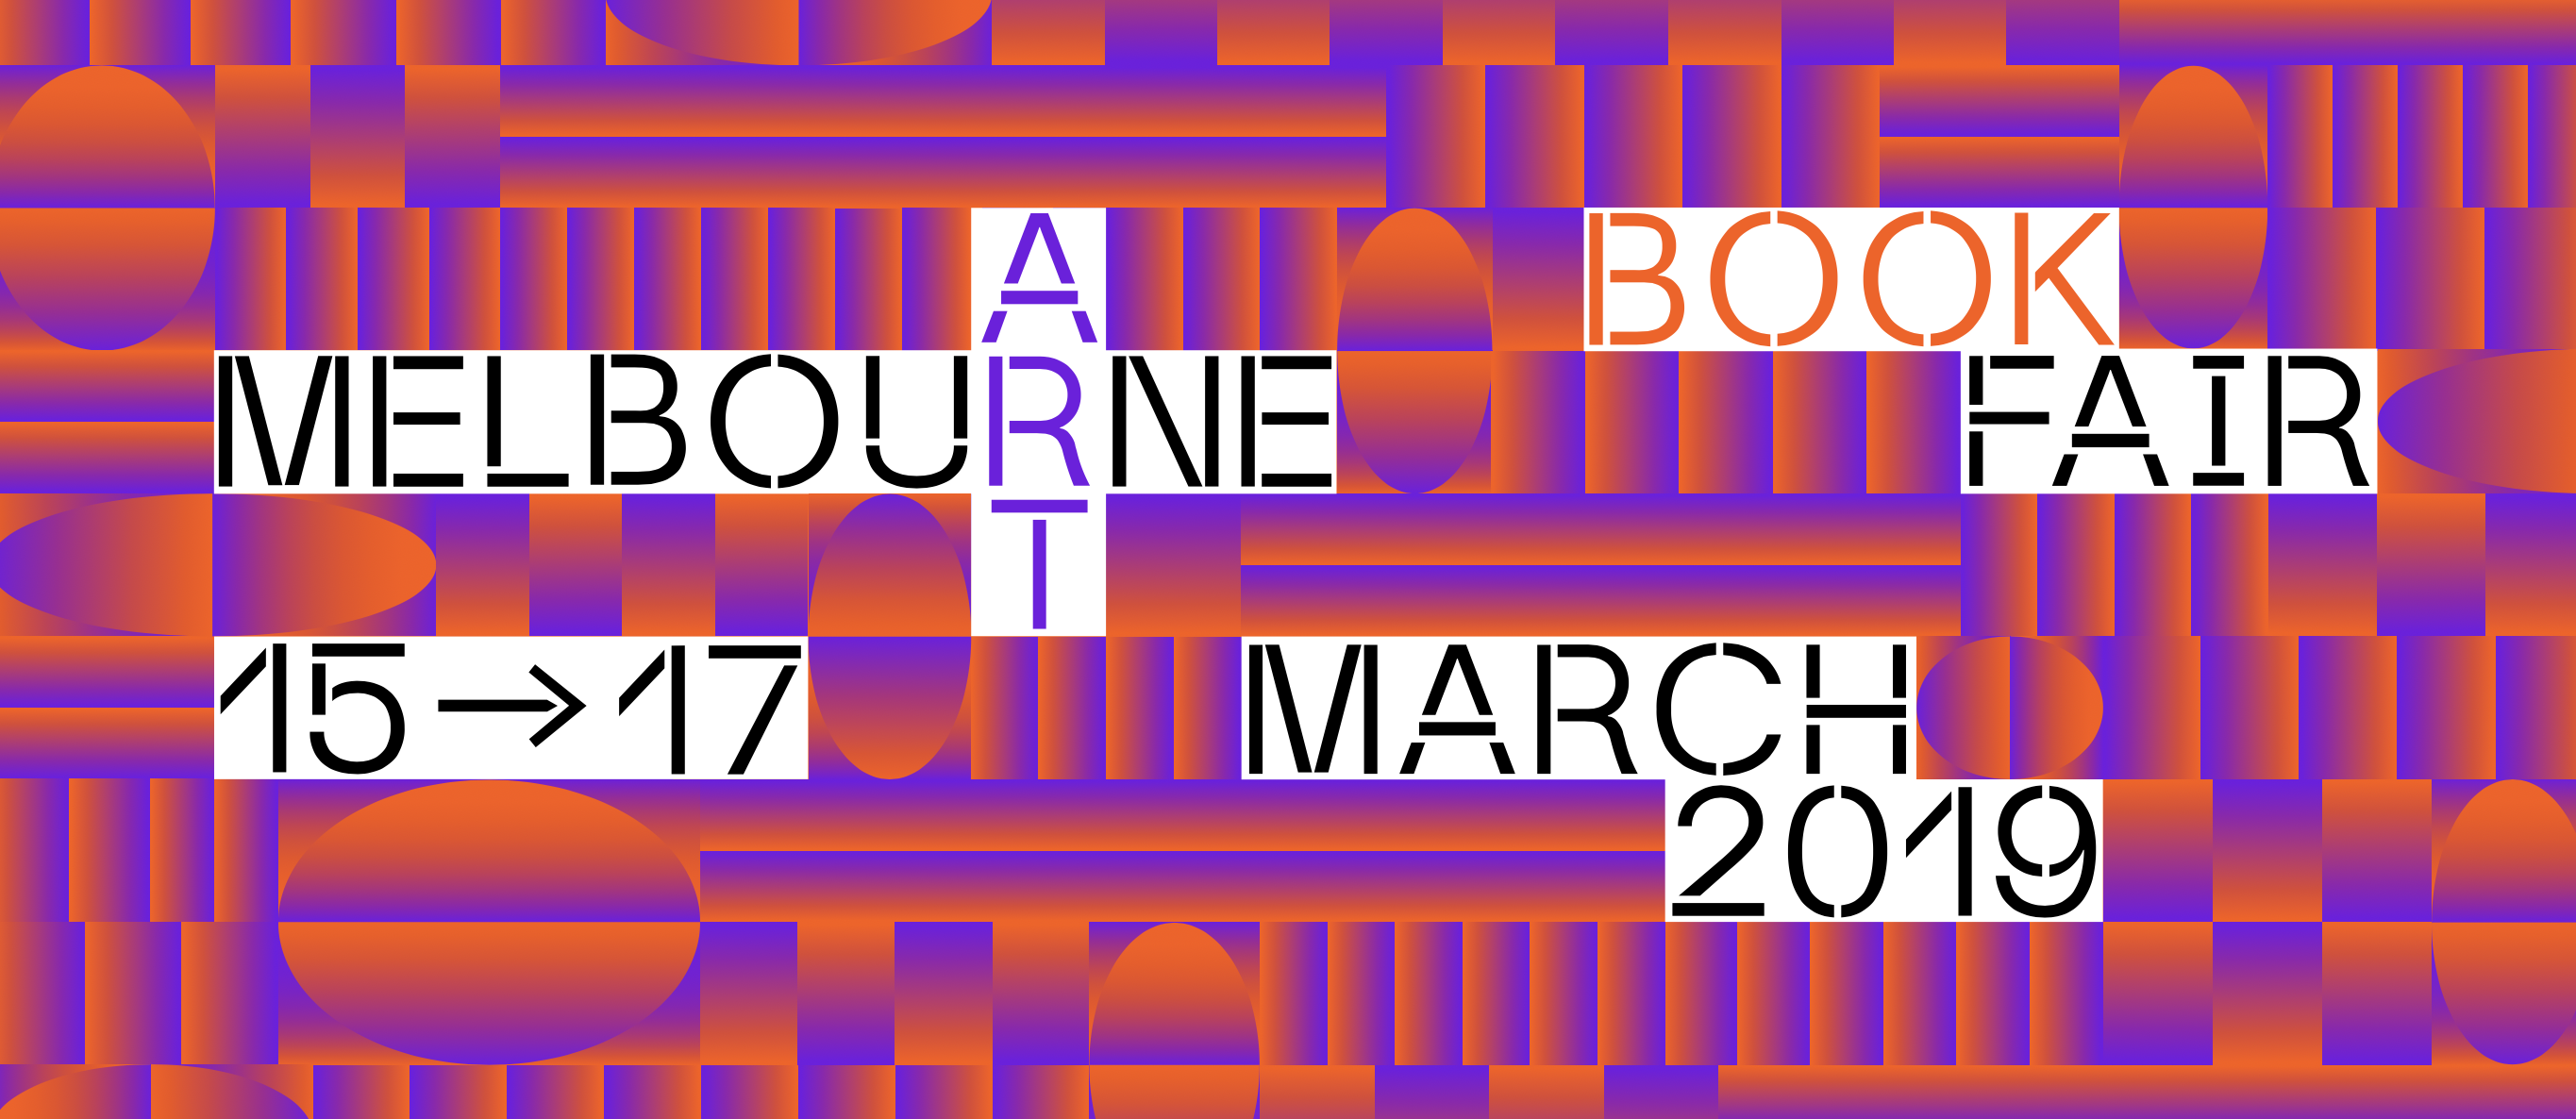 Melbourne Art Book Fair (NGV) [Melbourne]